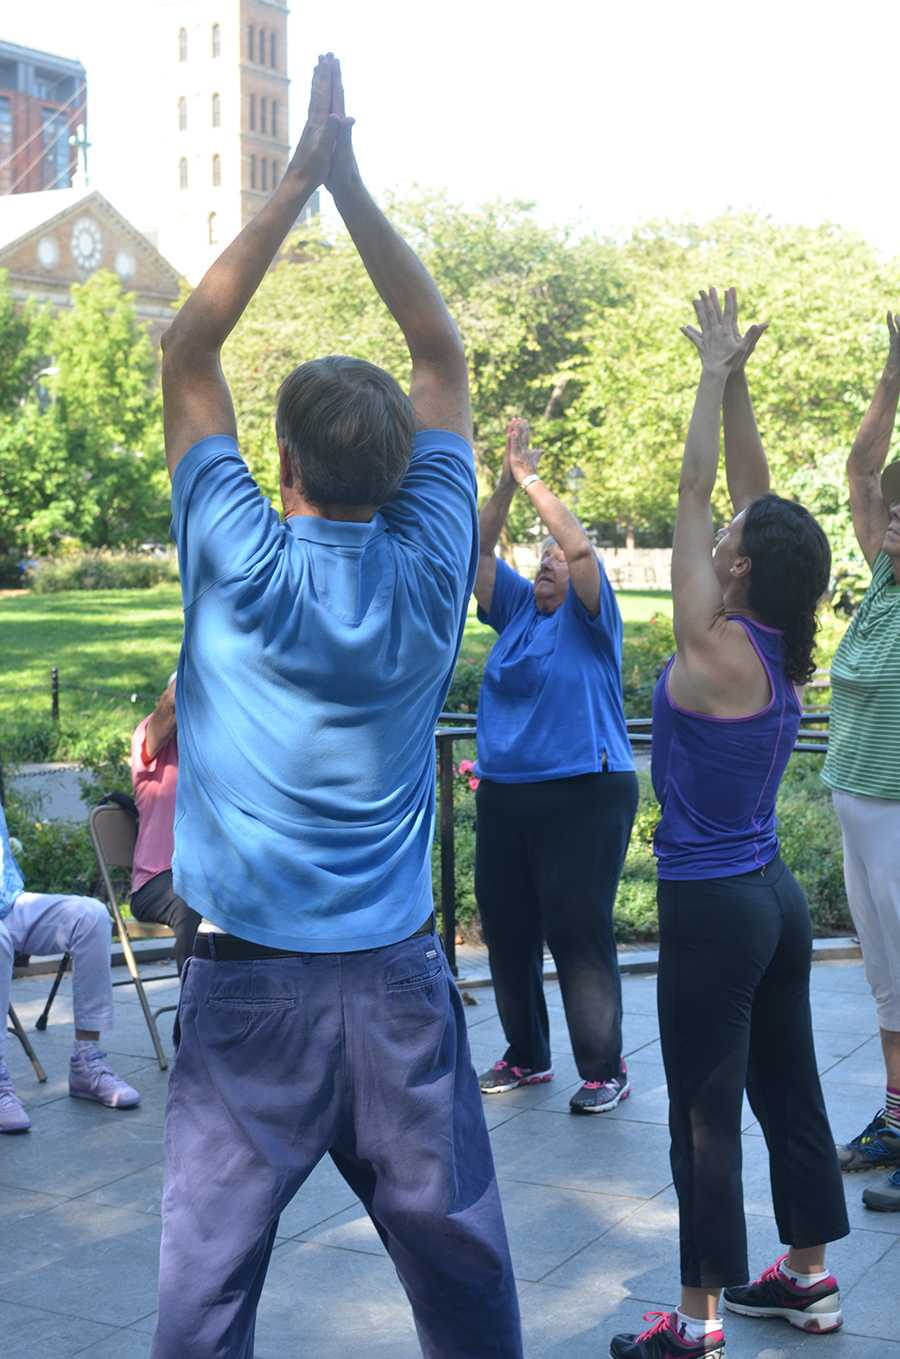 Free health classes are available in Washington Square Park.